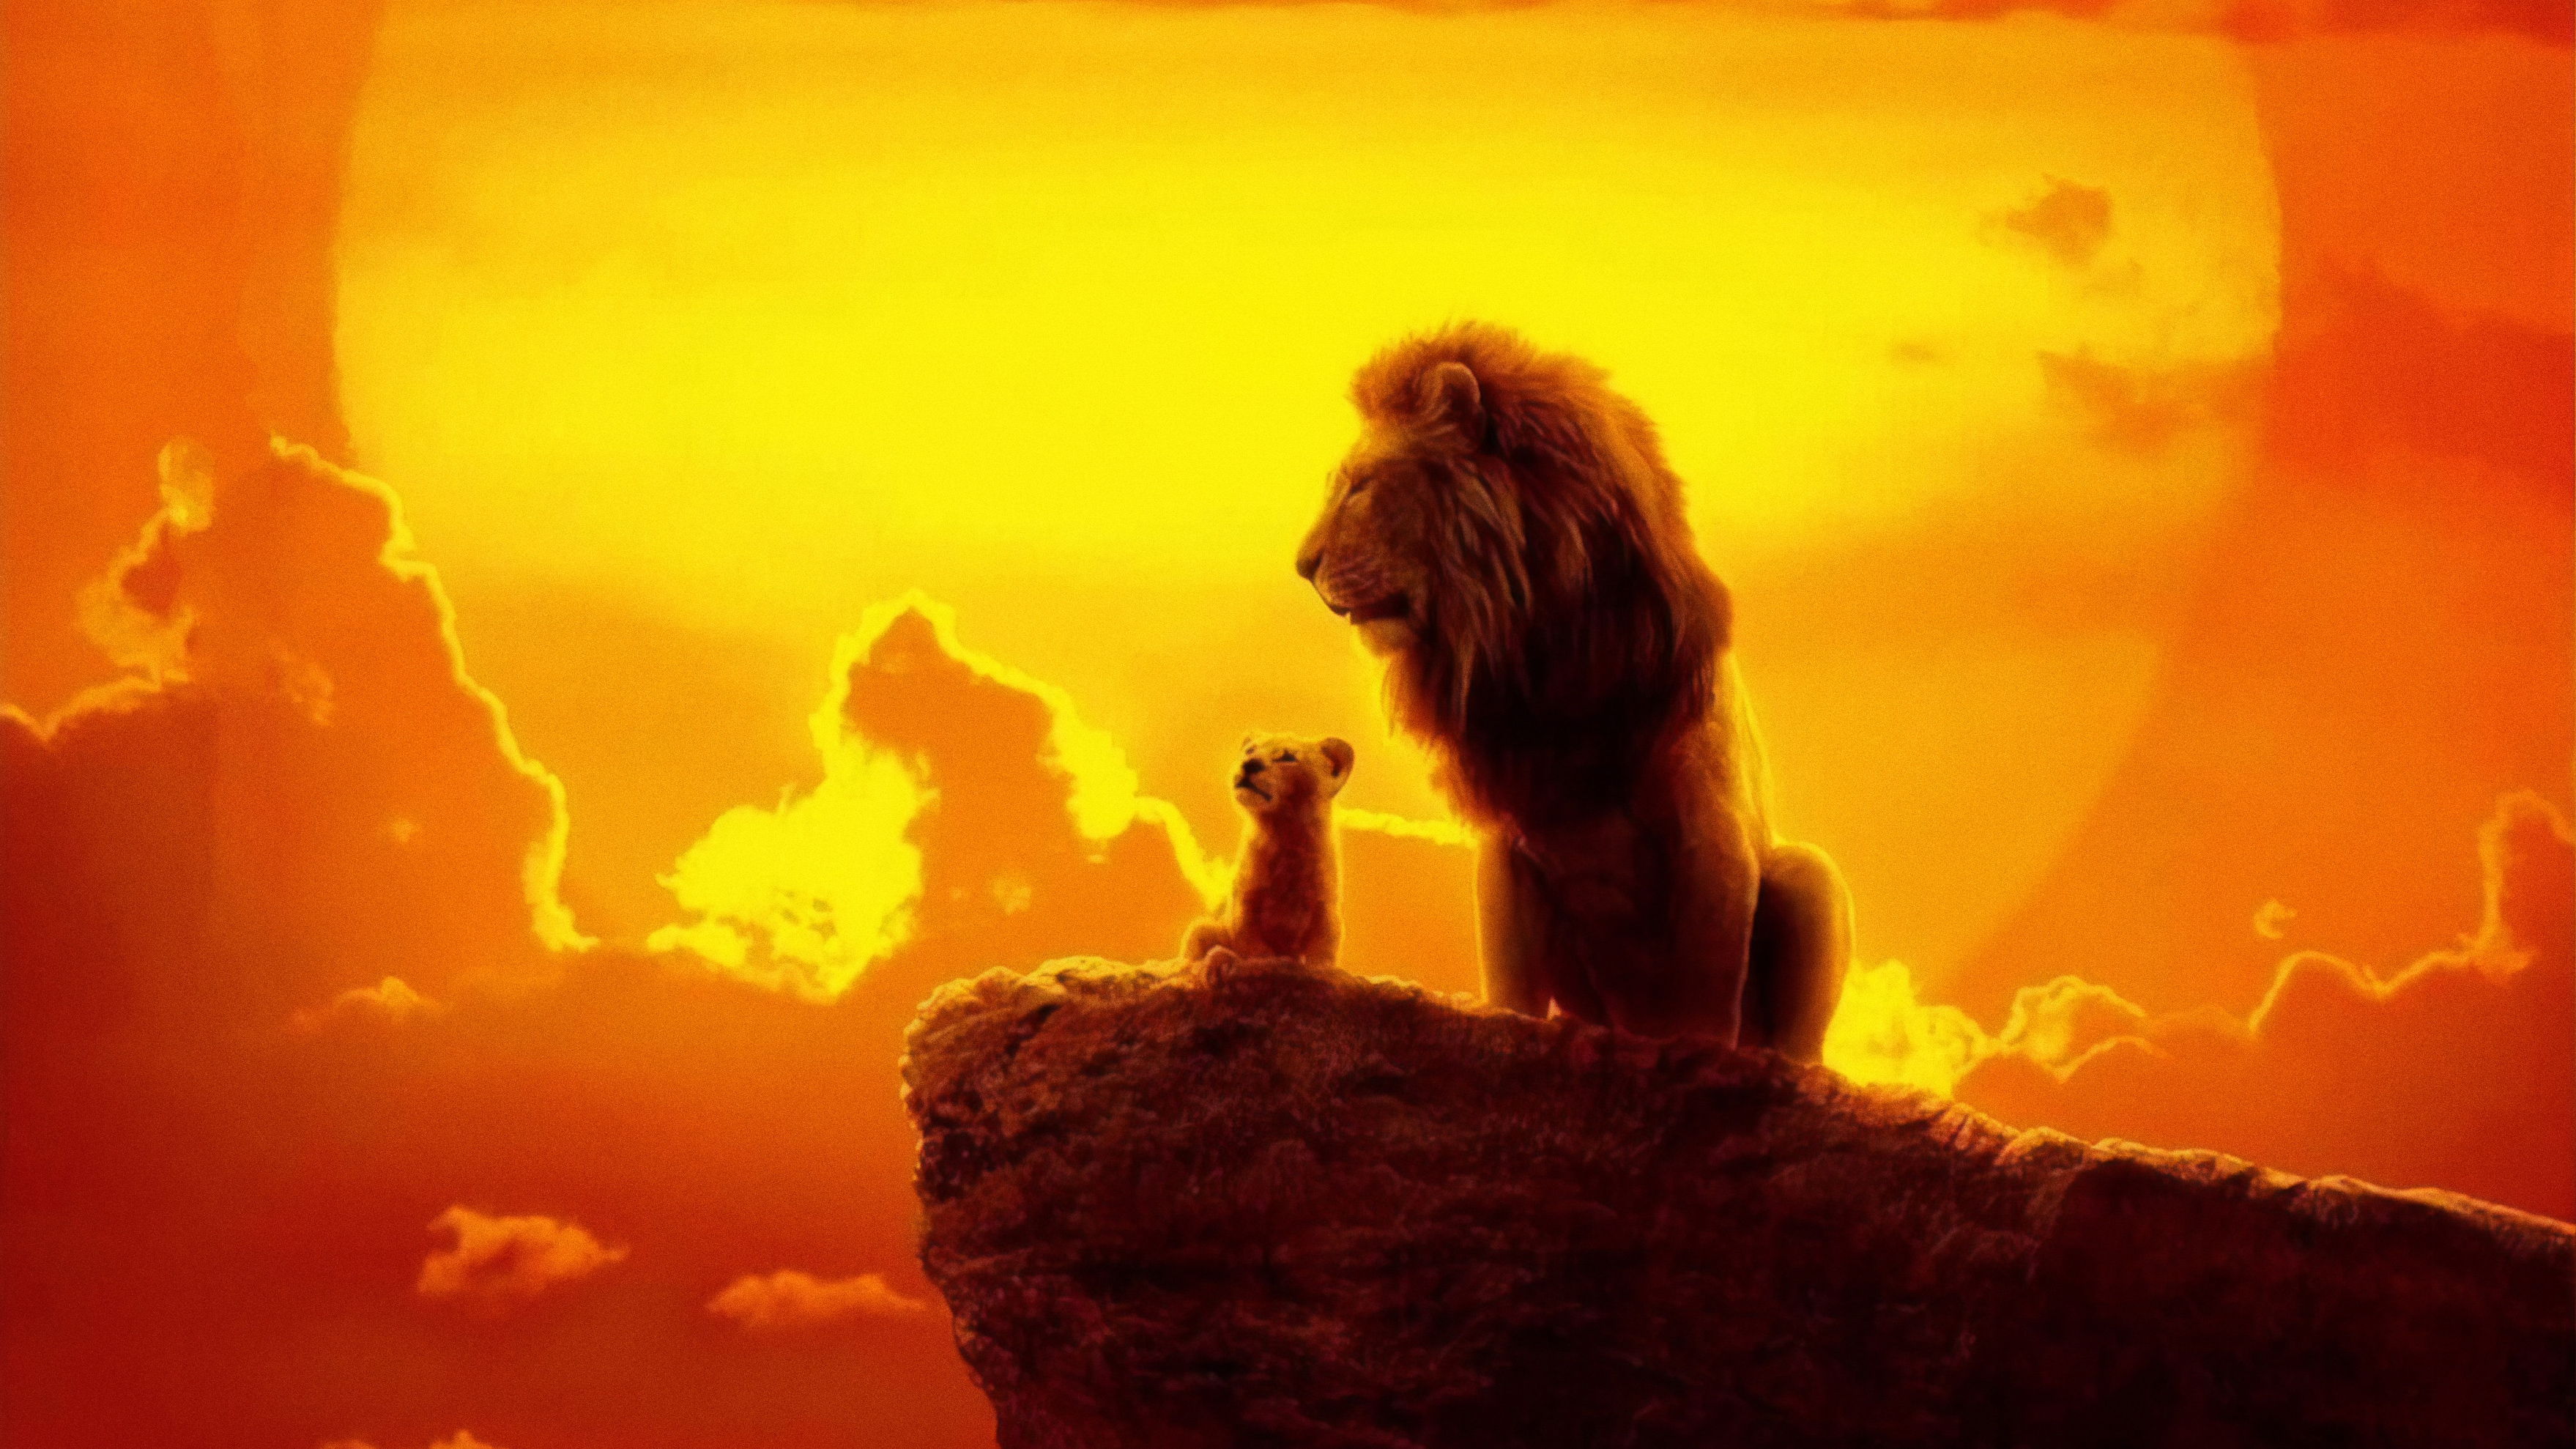 The lion king 2019 4k hd movies 4k wallpapers images - Lion king wallpaper ...